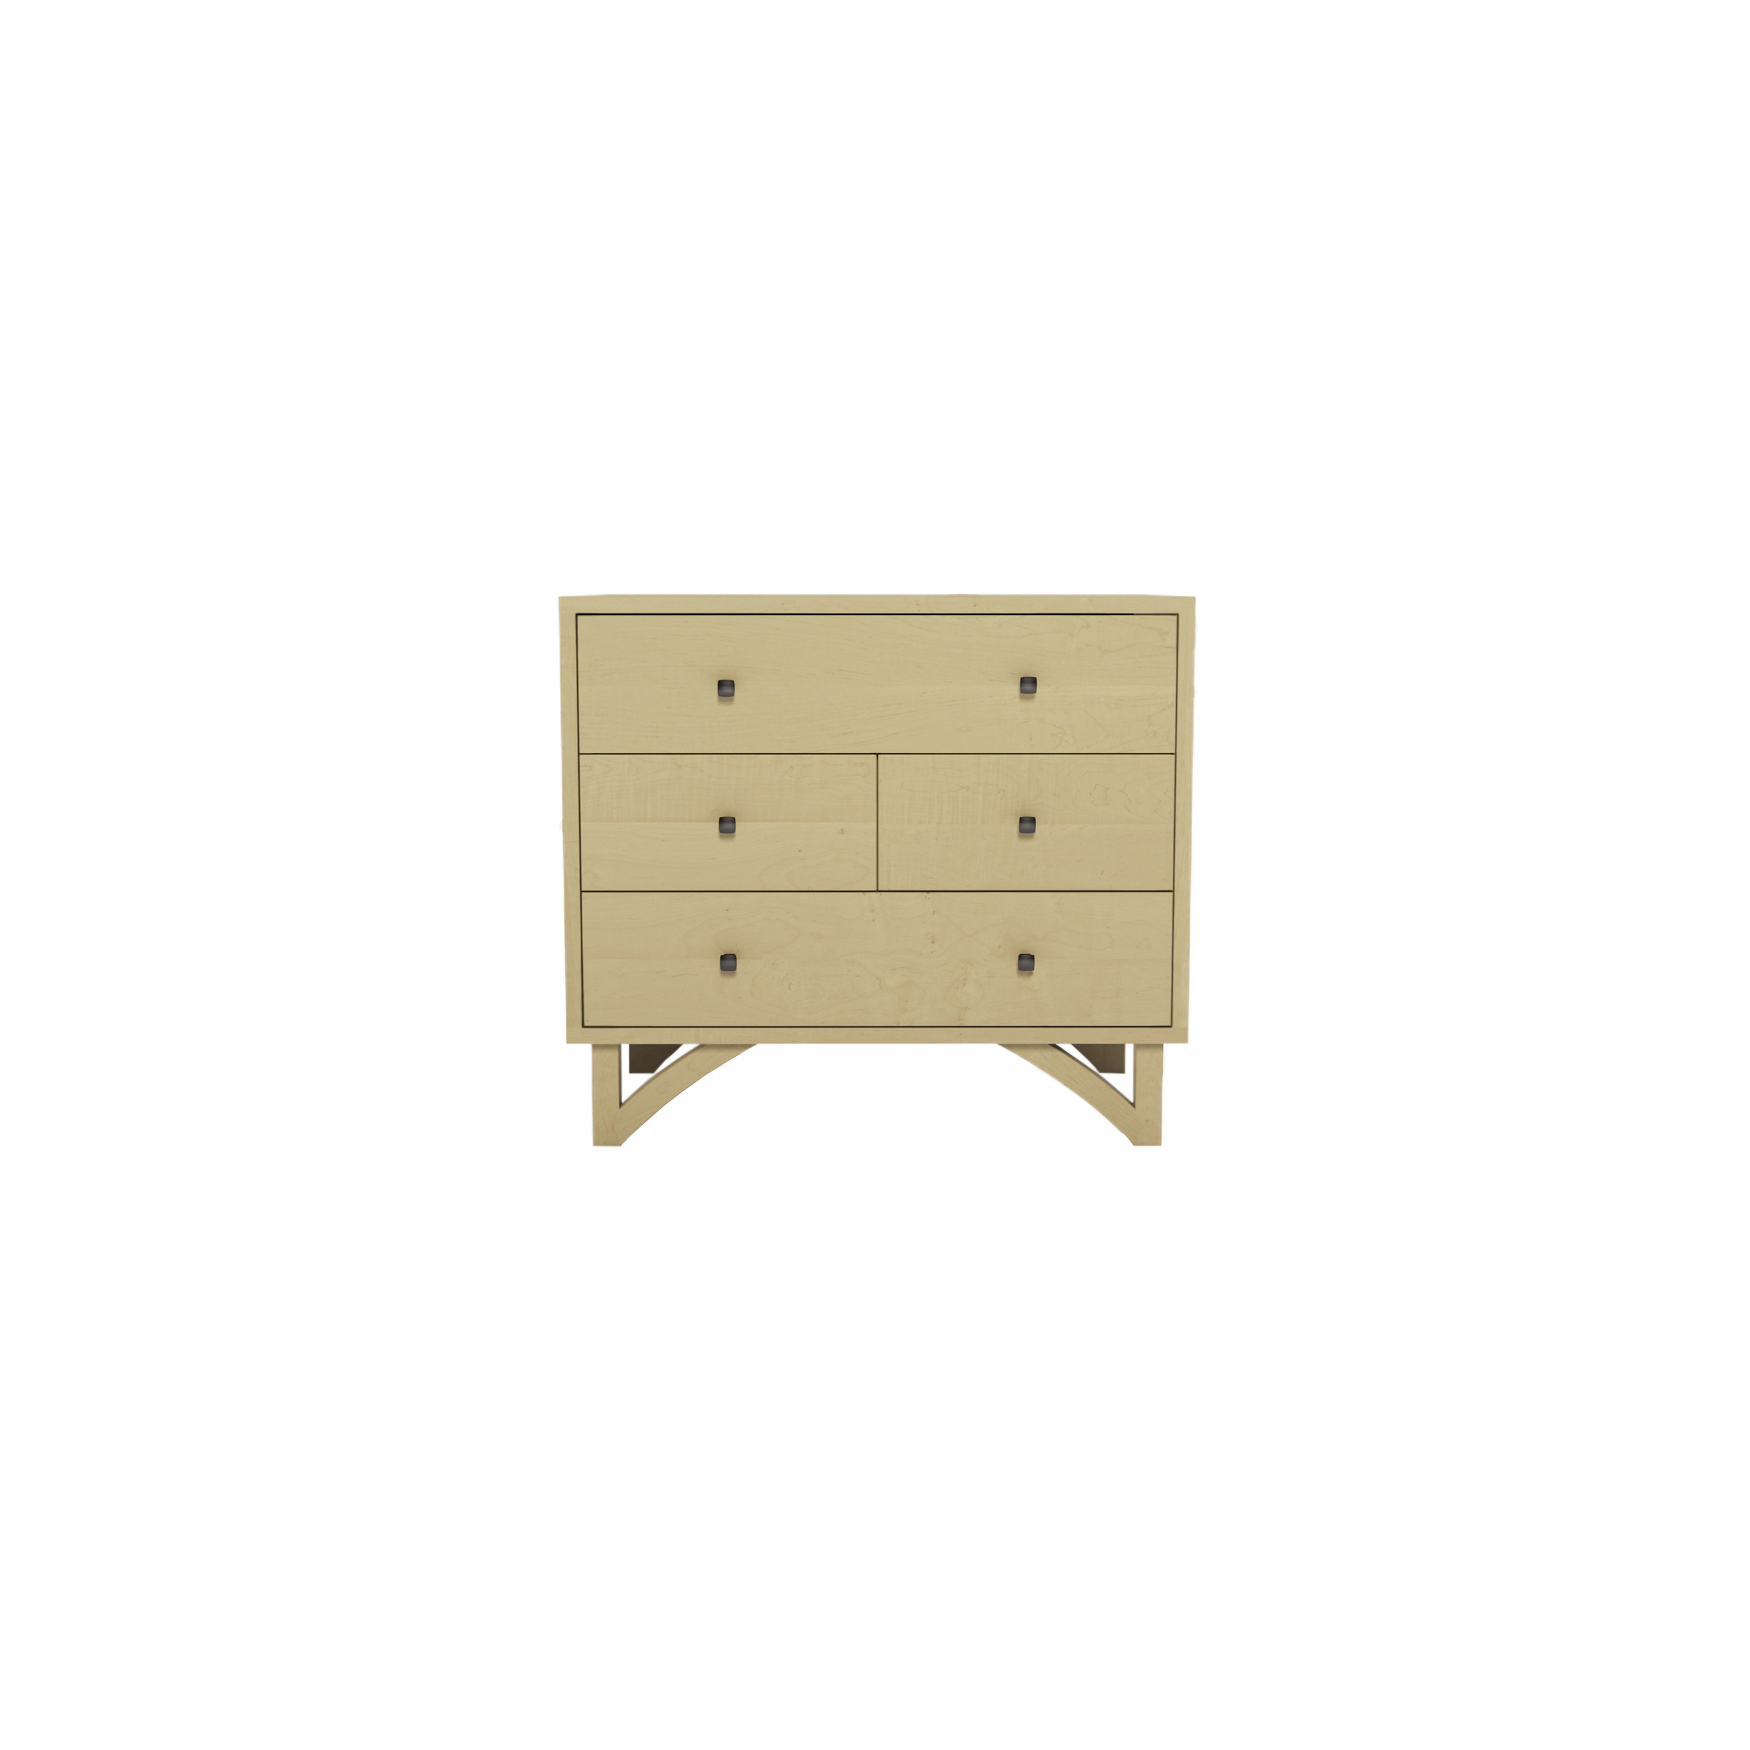 Series 454 Bedside Table With Four Drawers